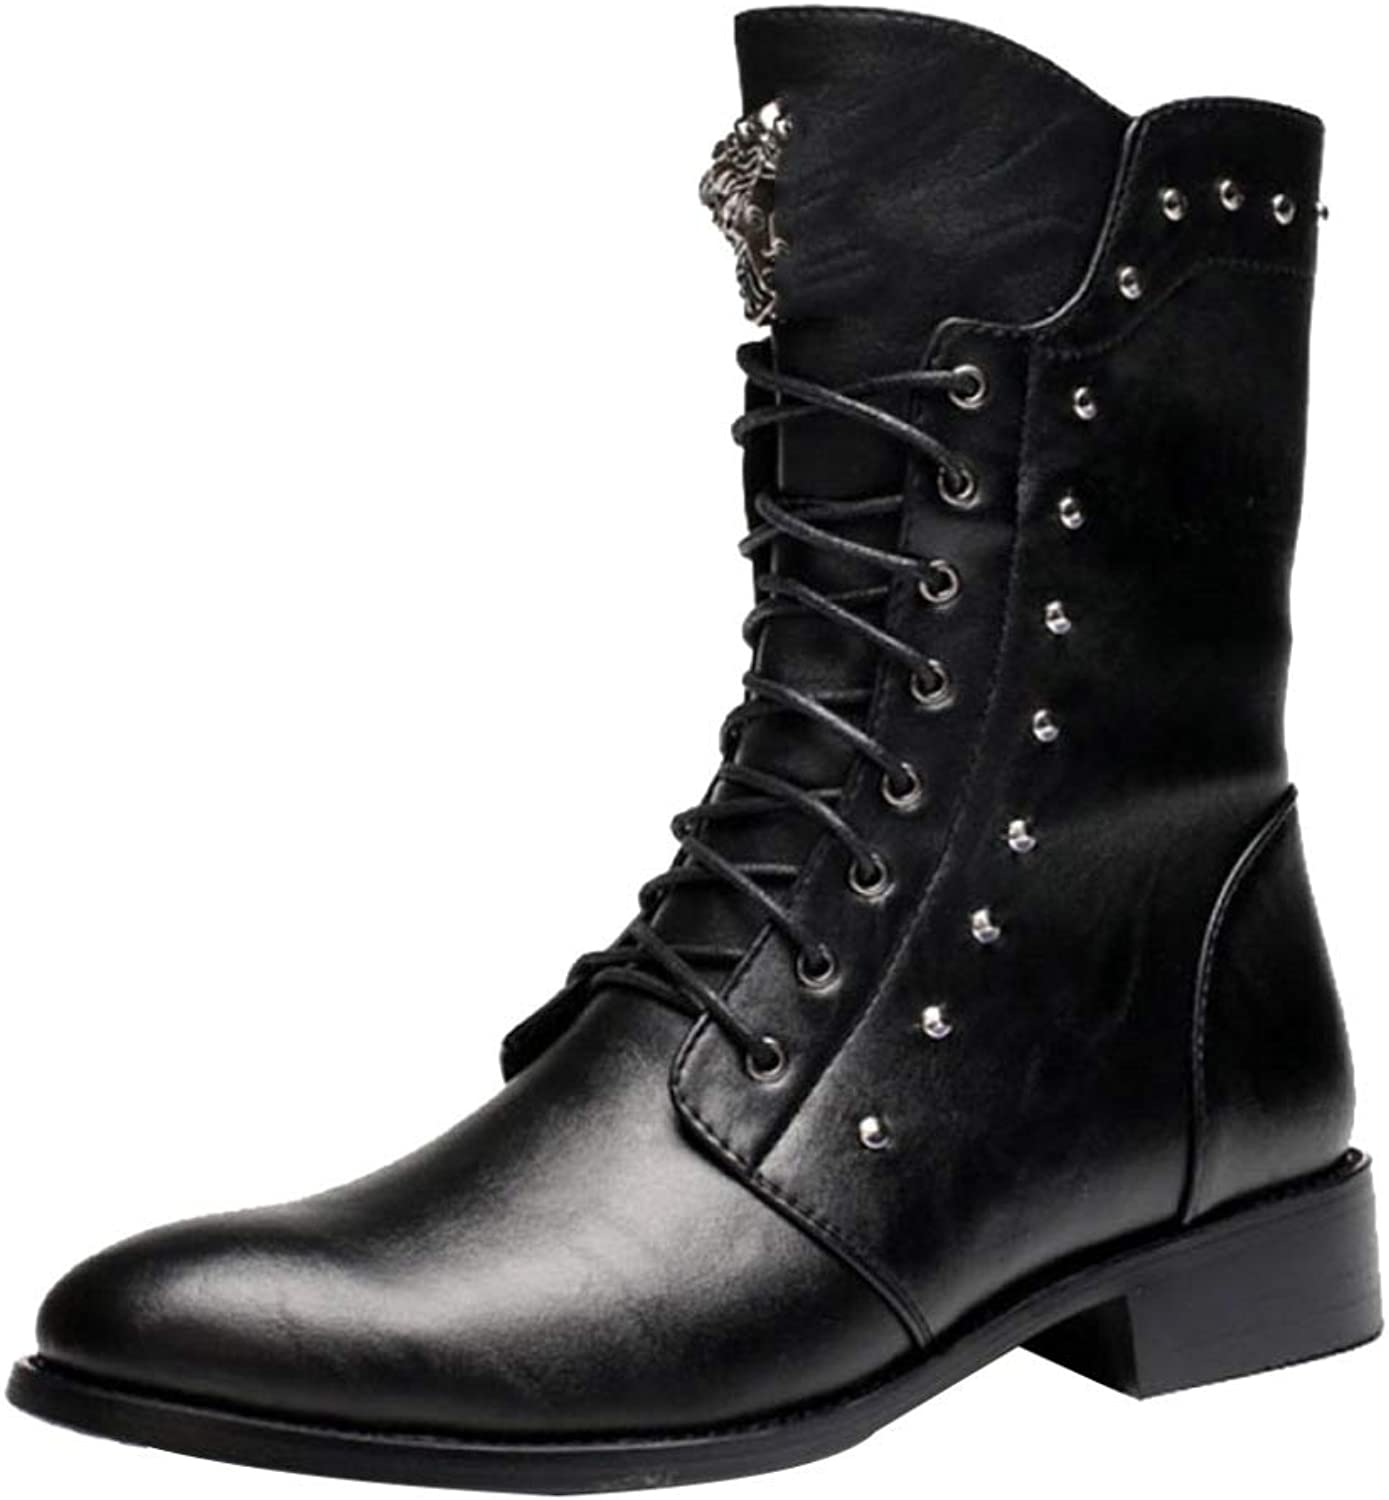 6cd776170c0 Tooling Boots Plus Velvet Zipper Martin Boots Pointed Long Rubber Riding  Boots Stage shoes Black-